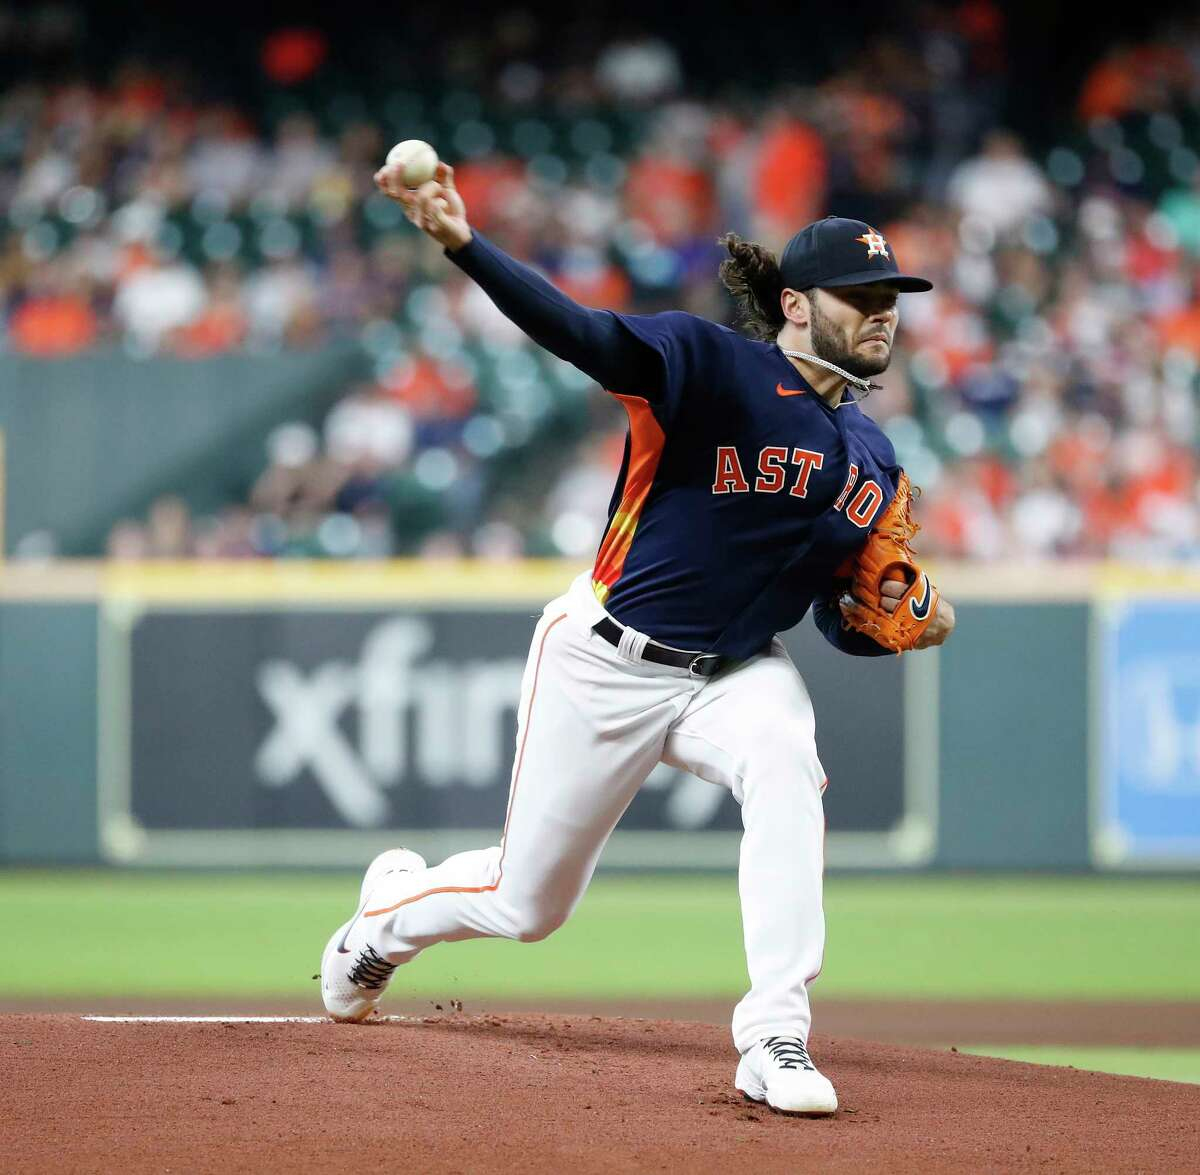 Houston Astros starting pitcher Lance McCullers Jr. (43) pitches to Minnesota Twins Max Kepler during the first inning of an MLB baseball game at Minute Maid Park, Sunday, August 8, 2021, in Houston.